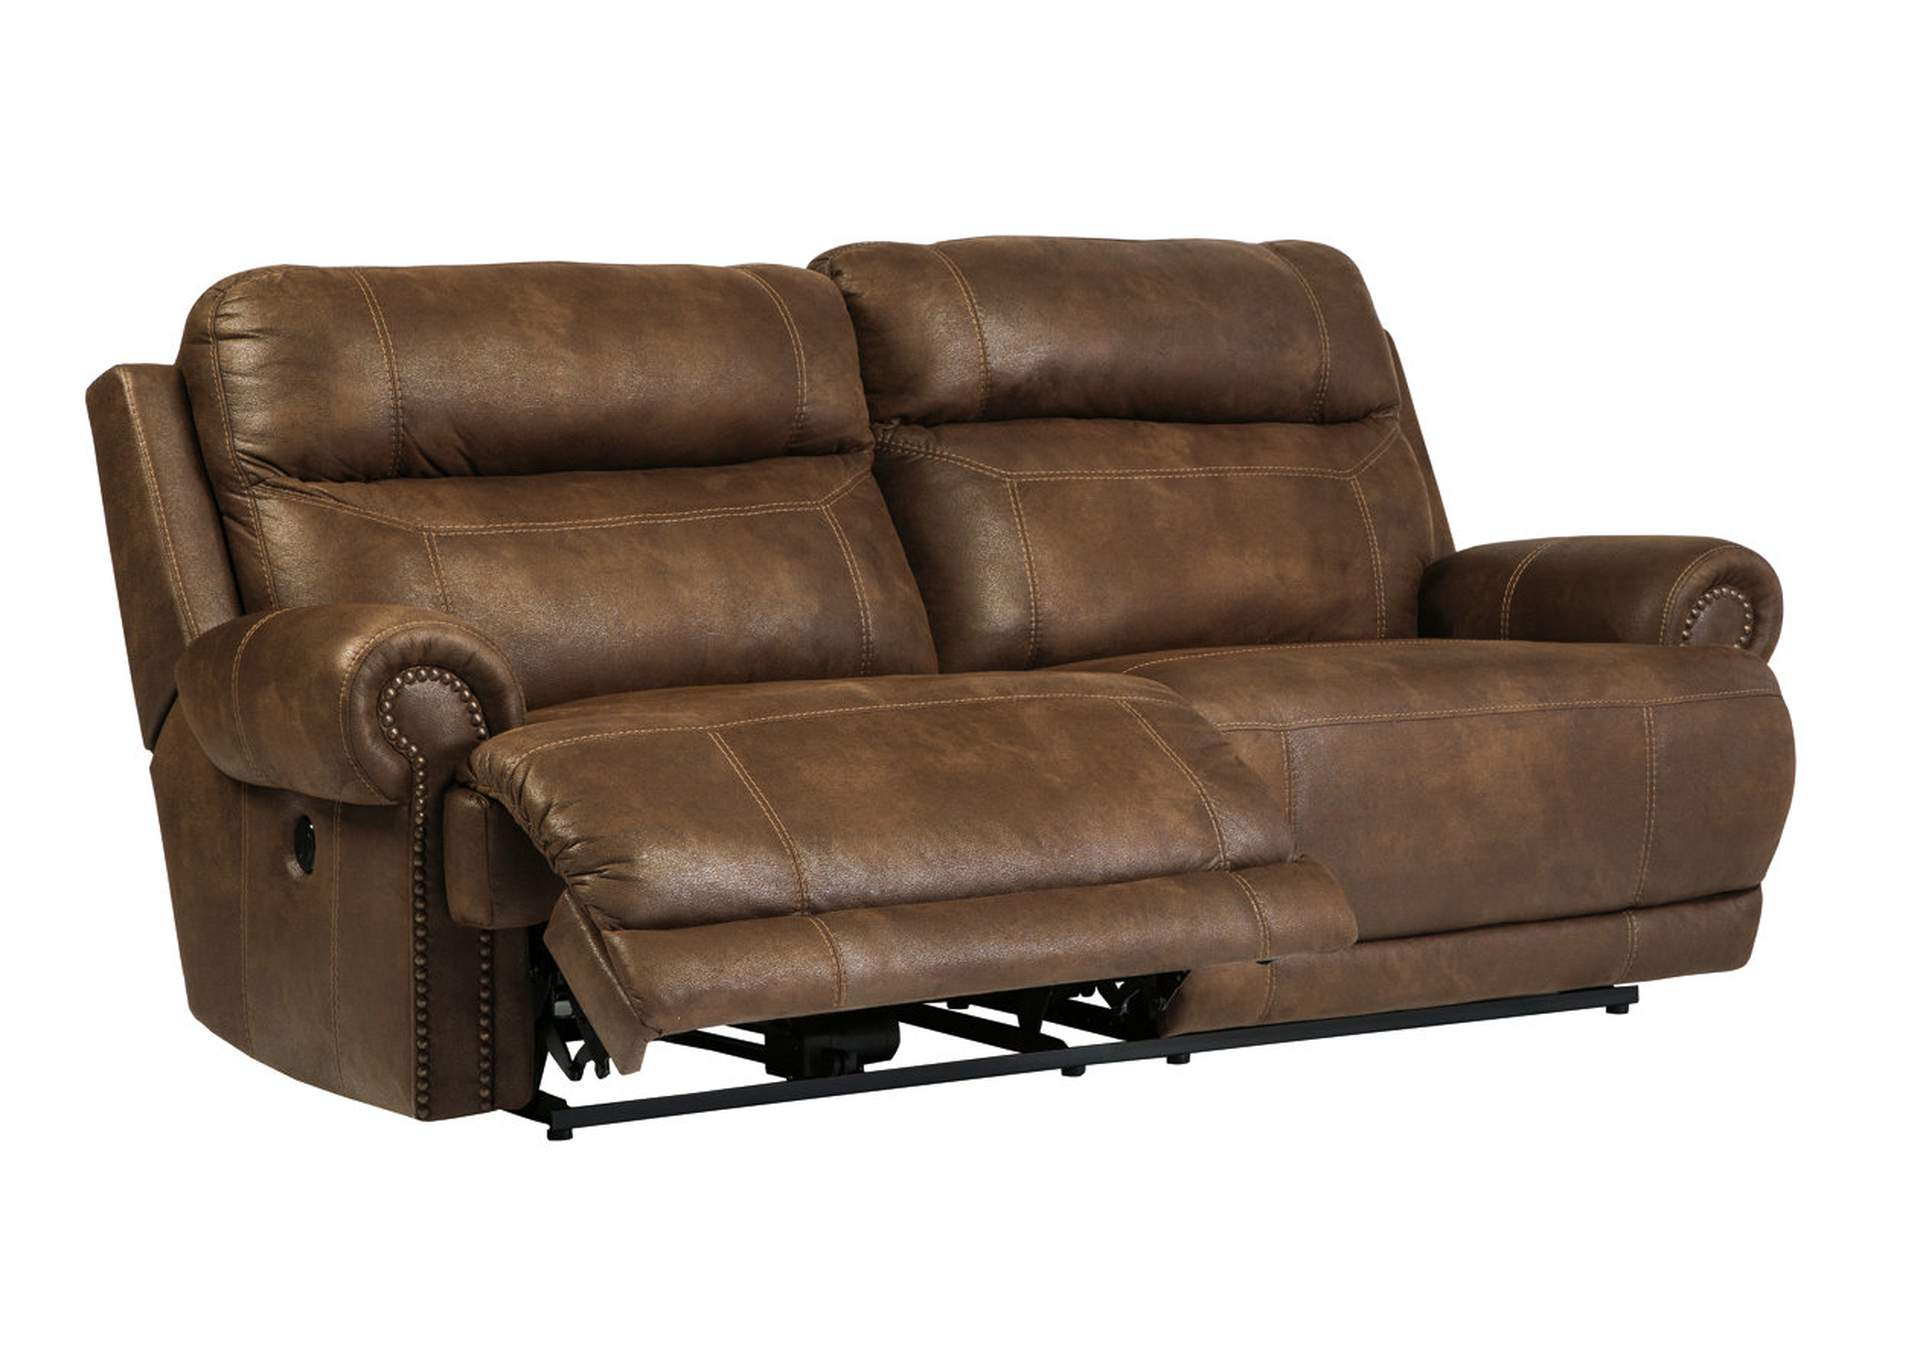 Austere Brown 2 Seat Power Reclining Sofa,Signature Design By Ashley